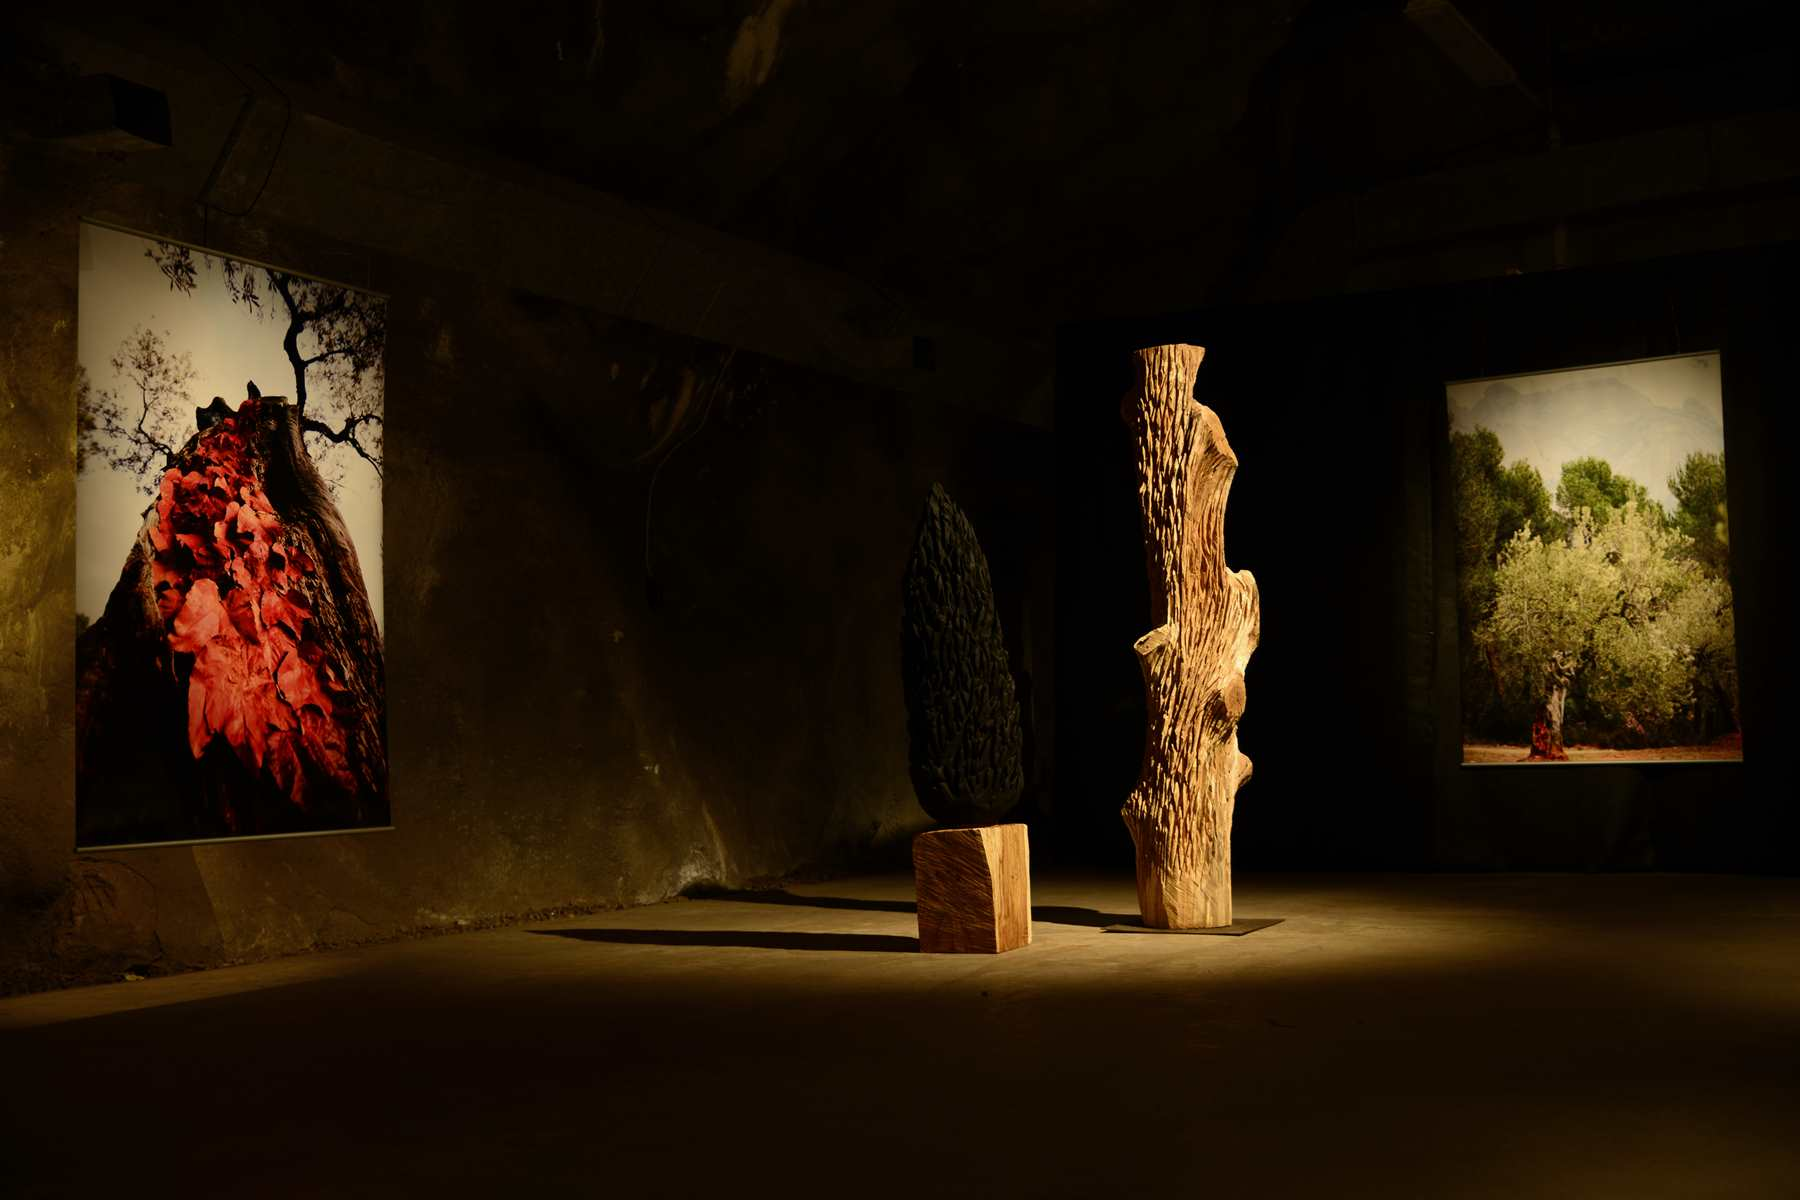 THE ETERNAL MOMENT, One night art show in a Swedish mountain shelter, 2013. Exhibition by Karl Chilcott.